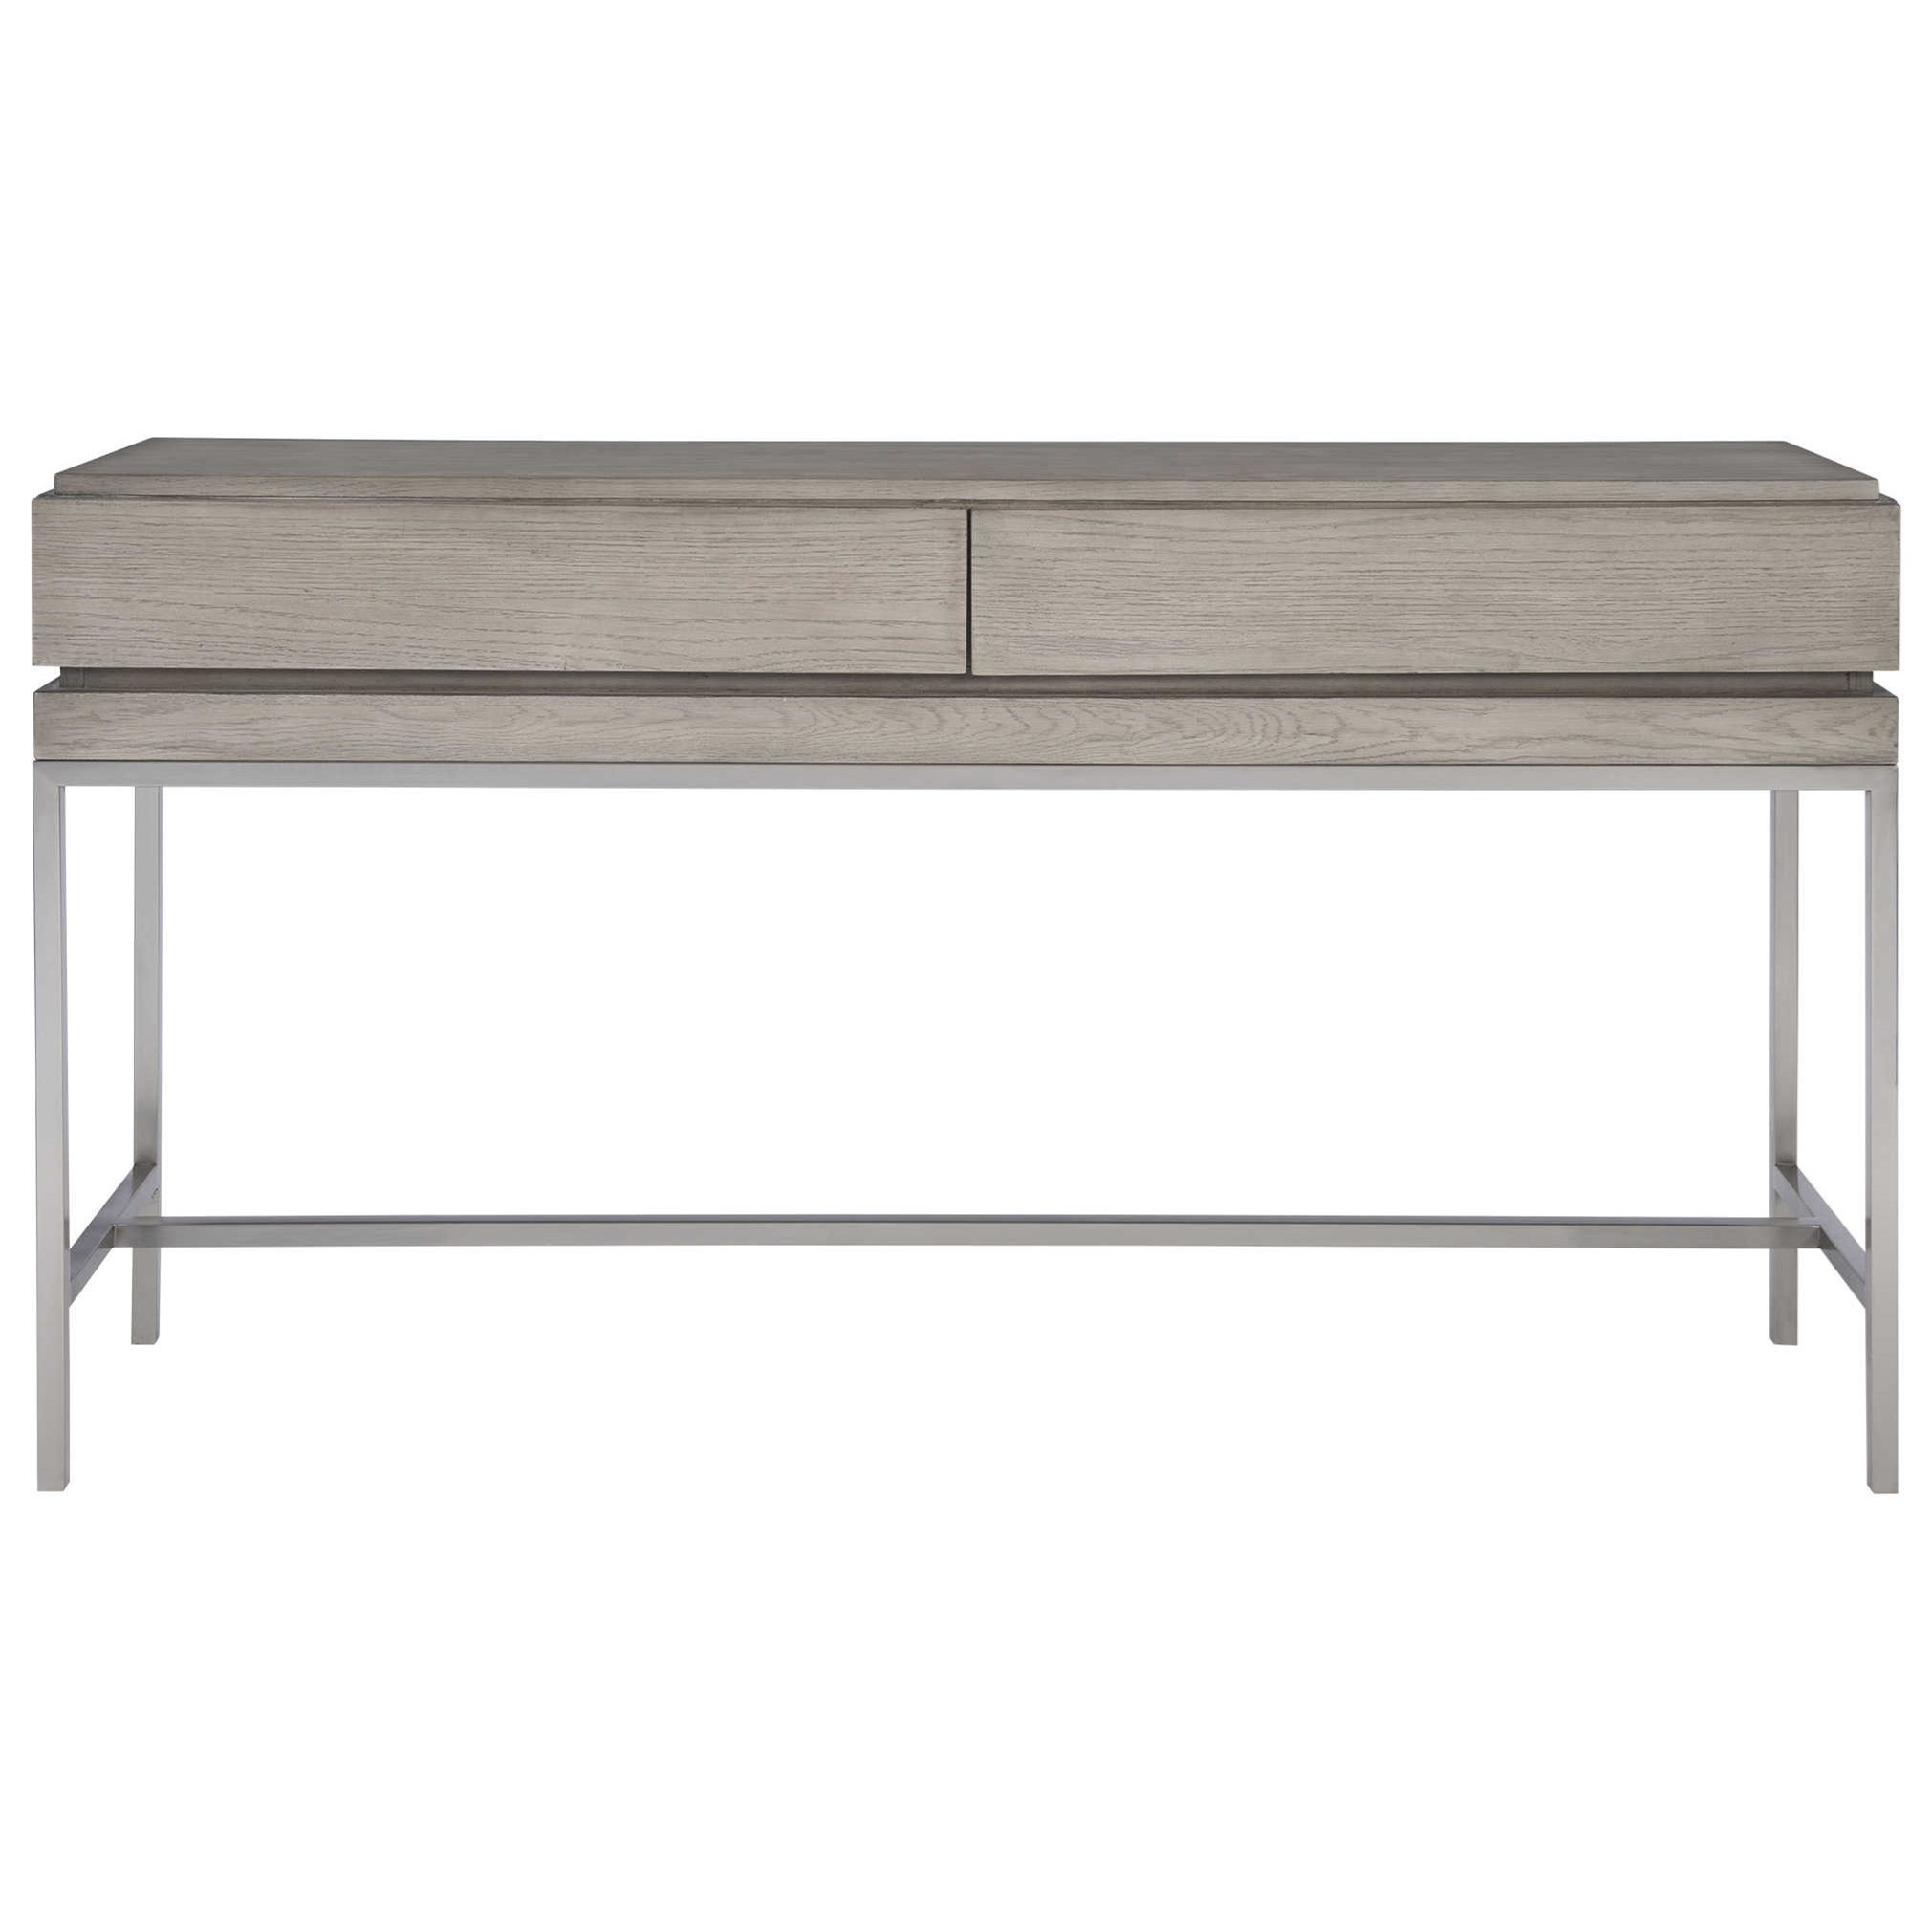 Accent Furniture - Occasional Tables Kamala Gray Oak Console Table by Uttermost at Upper Room Home Furnishings